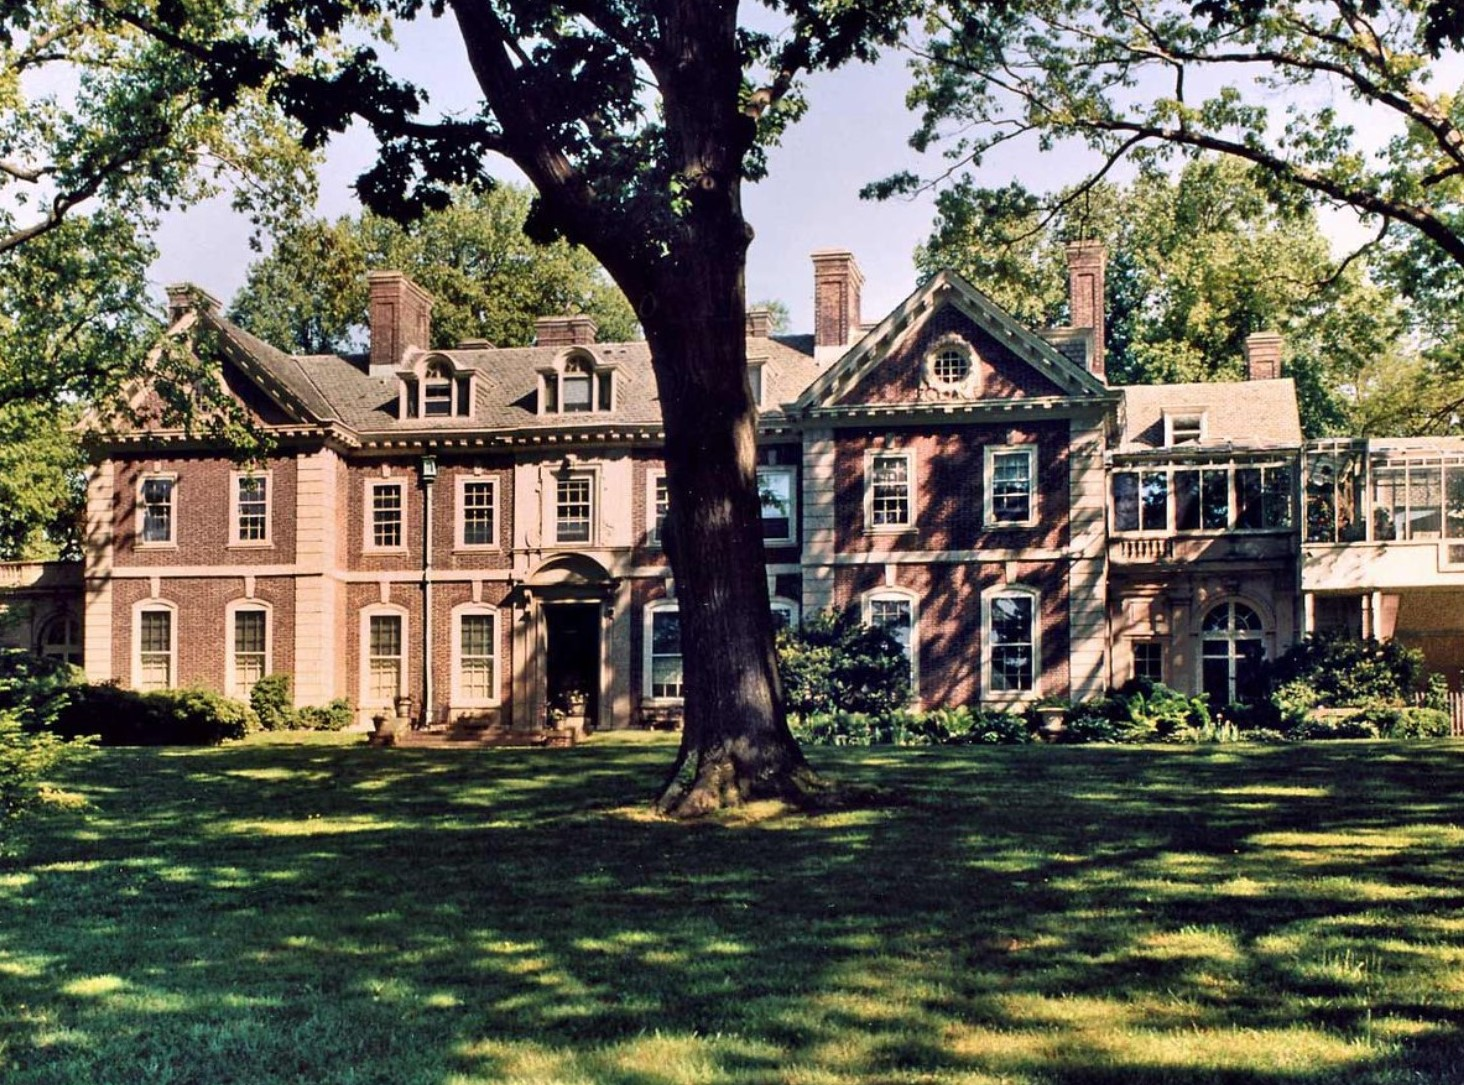 FROM DELCO: New Book Tells Story of Hidden Lives at Famous Ardrossan Estate in Villanova